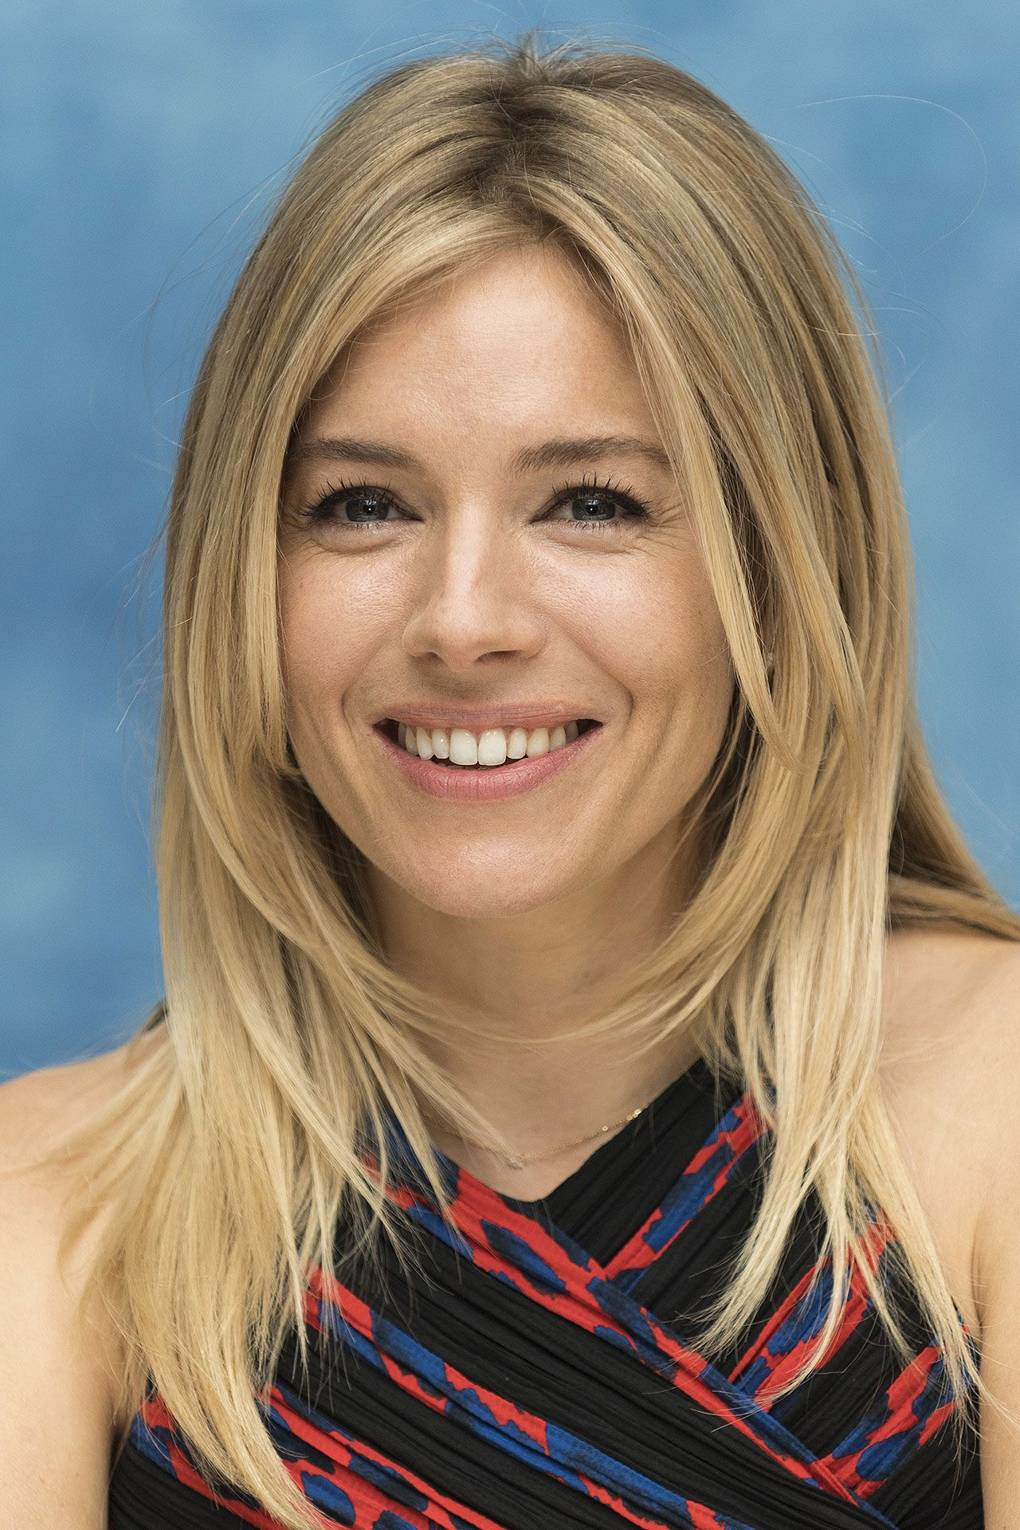 sienna miller's best hair and beauty looks through the years